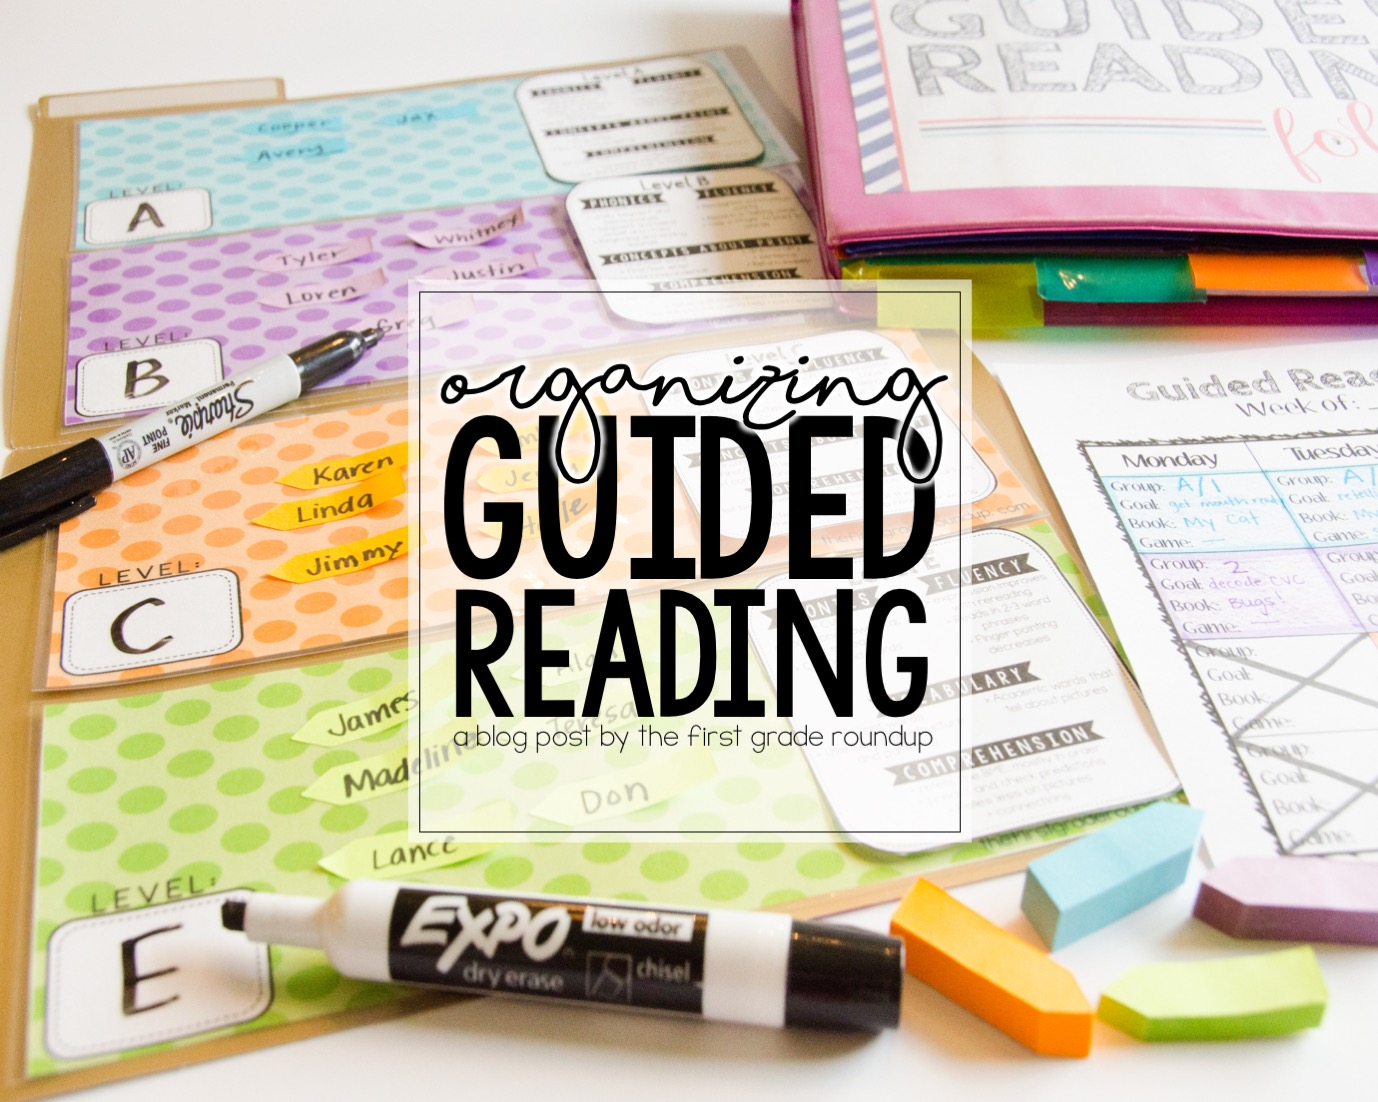 Organizing Guided Reading - Firstgraderoundup